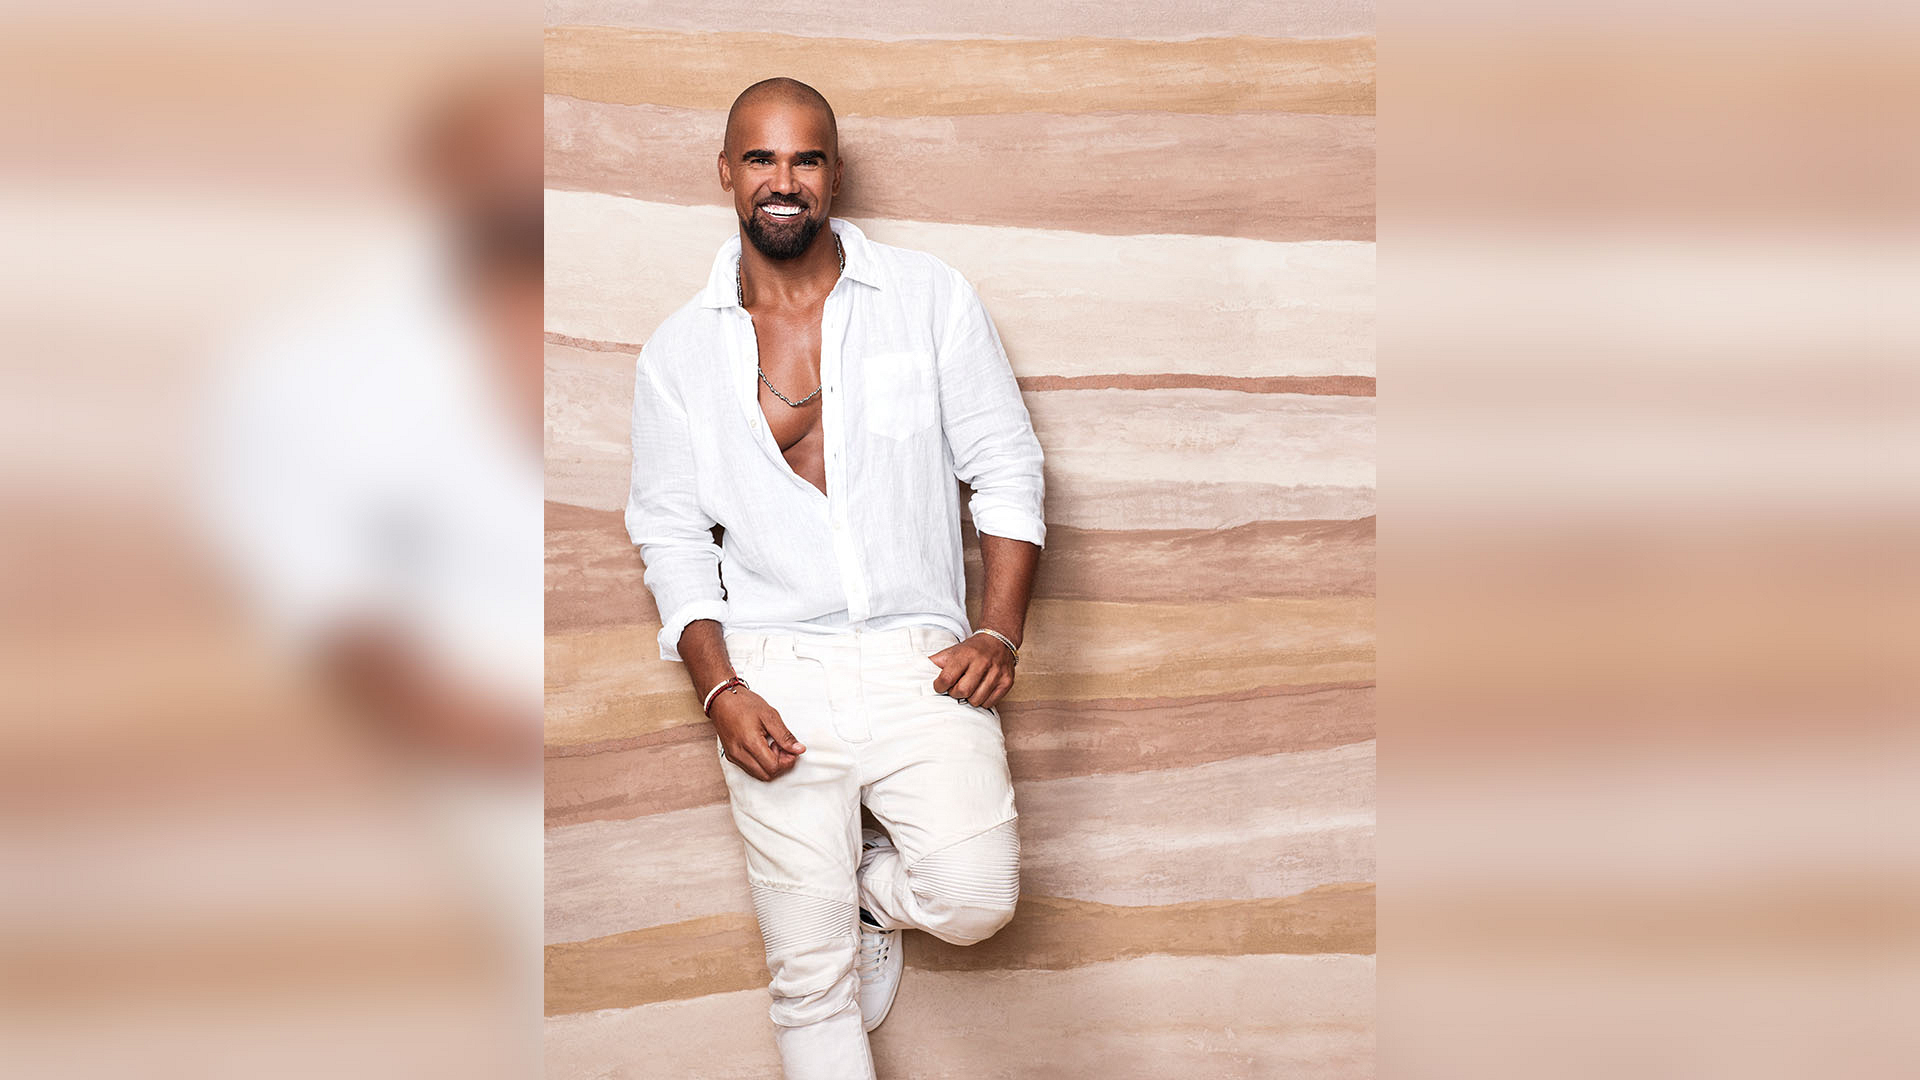 See these hot new Shemar Moore pics before anyone else